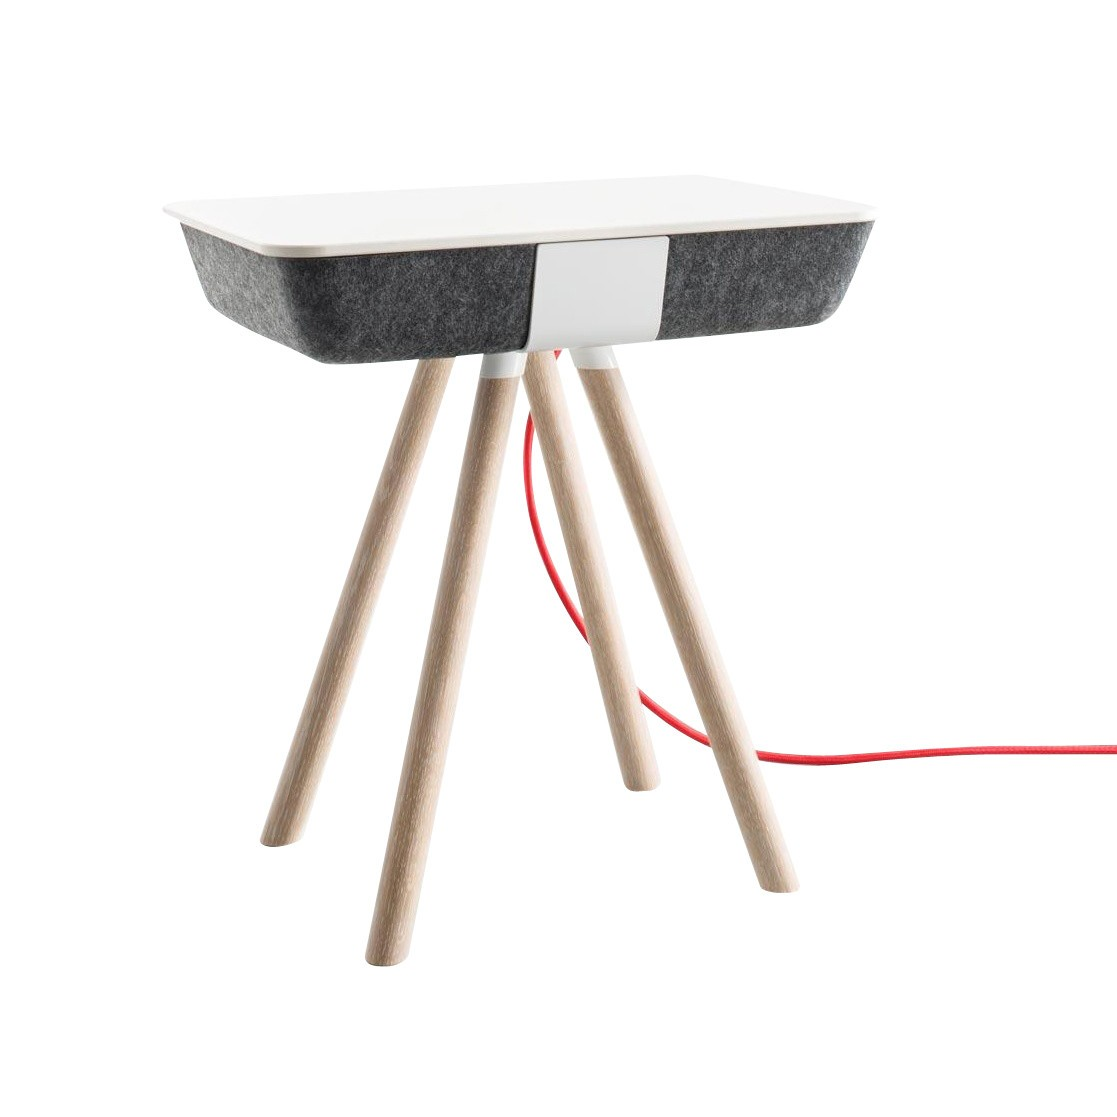 Sidetable Wit Hout.Pad Side Table With Without Charging Function